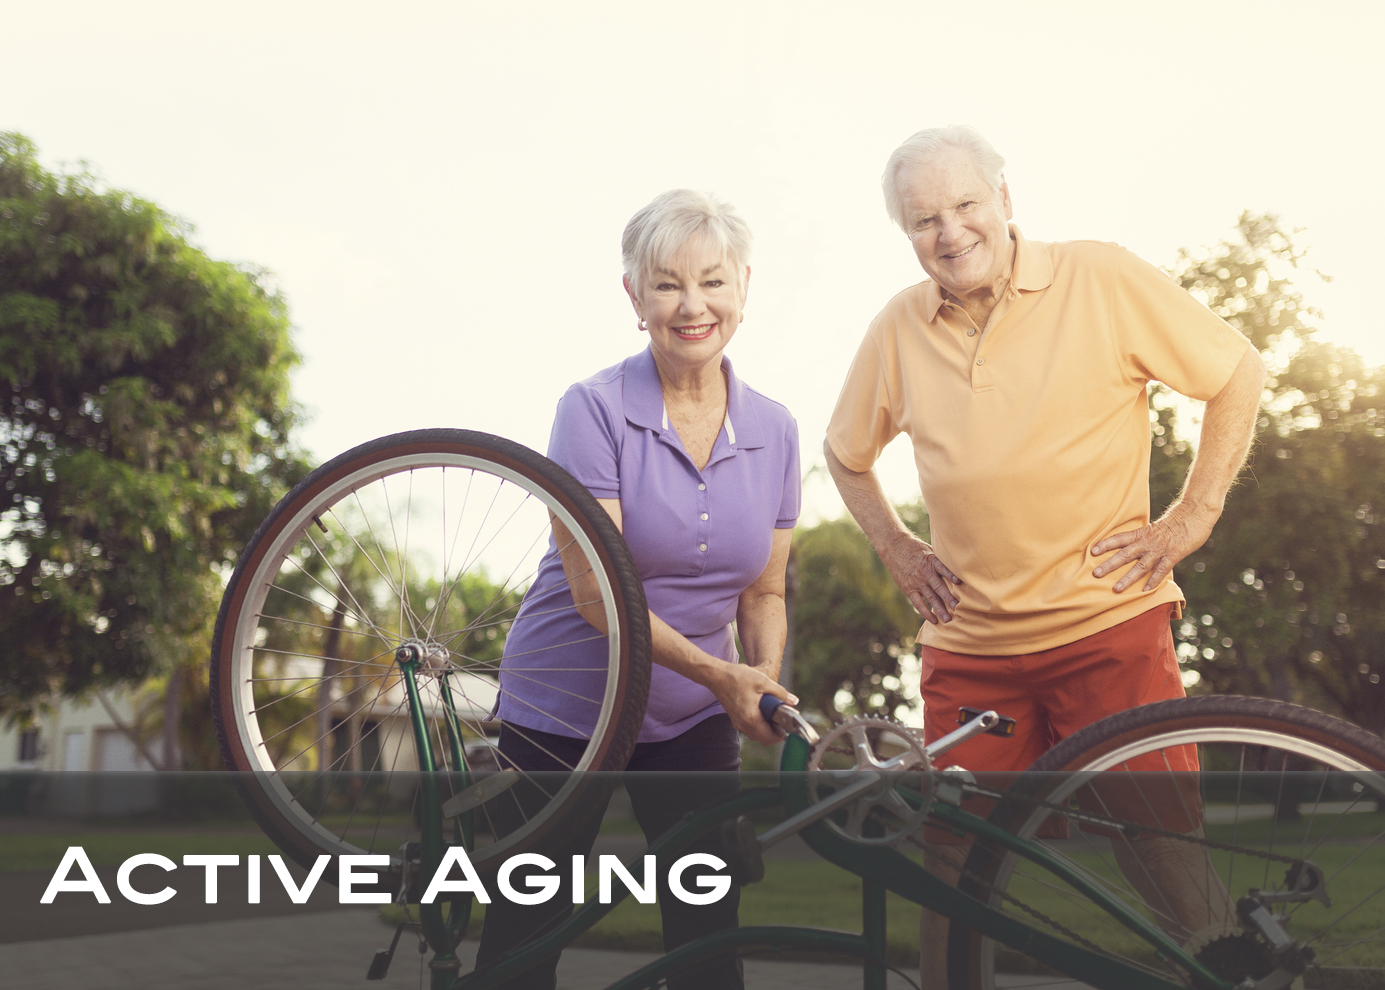 ActiveAging.jpg